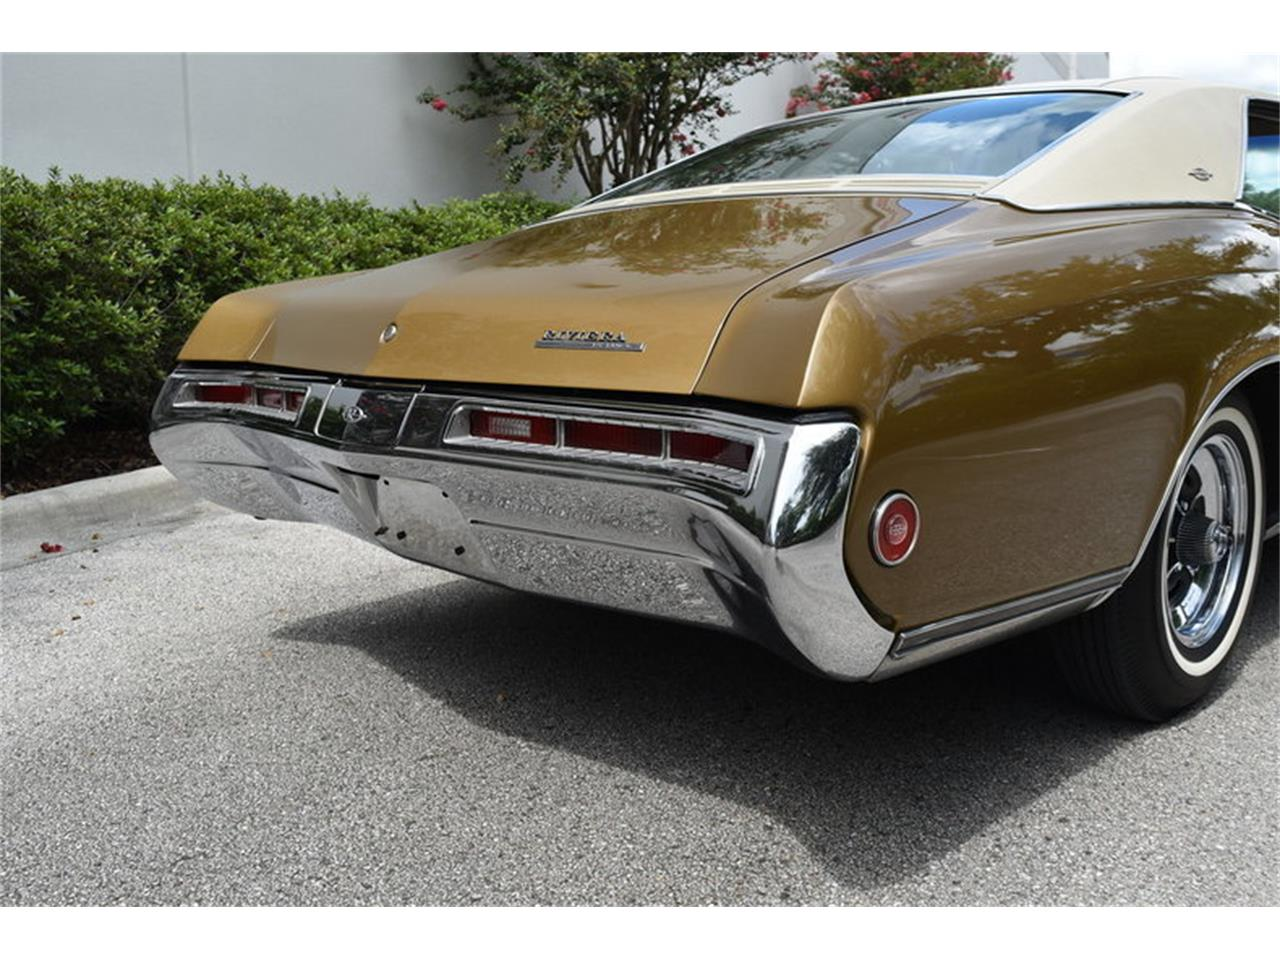 Large Picture of Classic '69 Riviera located in Zephyrhills Florida Auction Vehicle Offered by SunCoast Auto Auction - ONHO